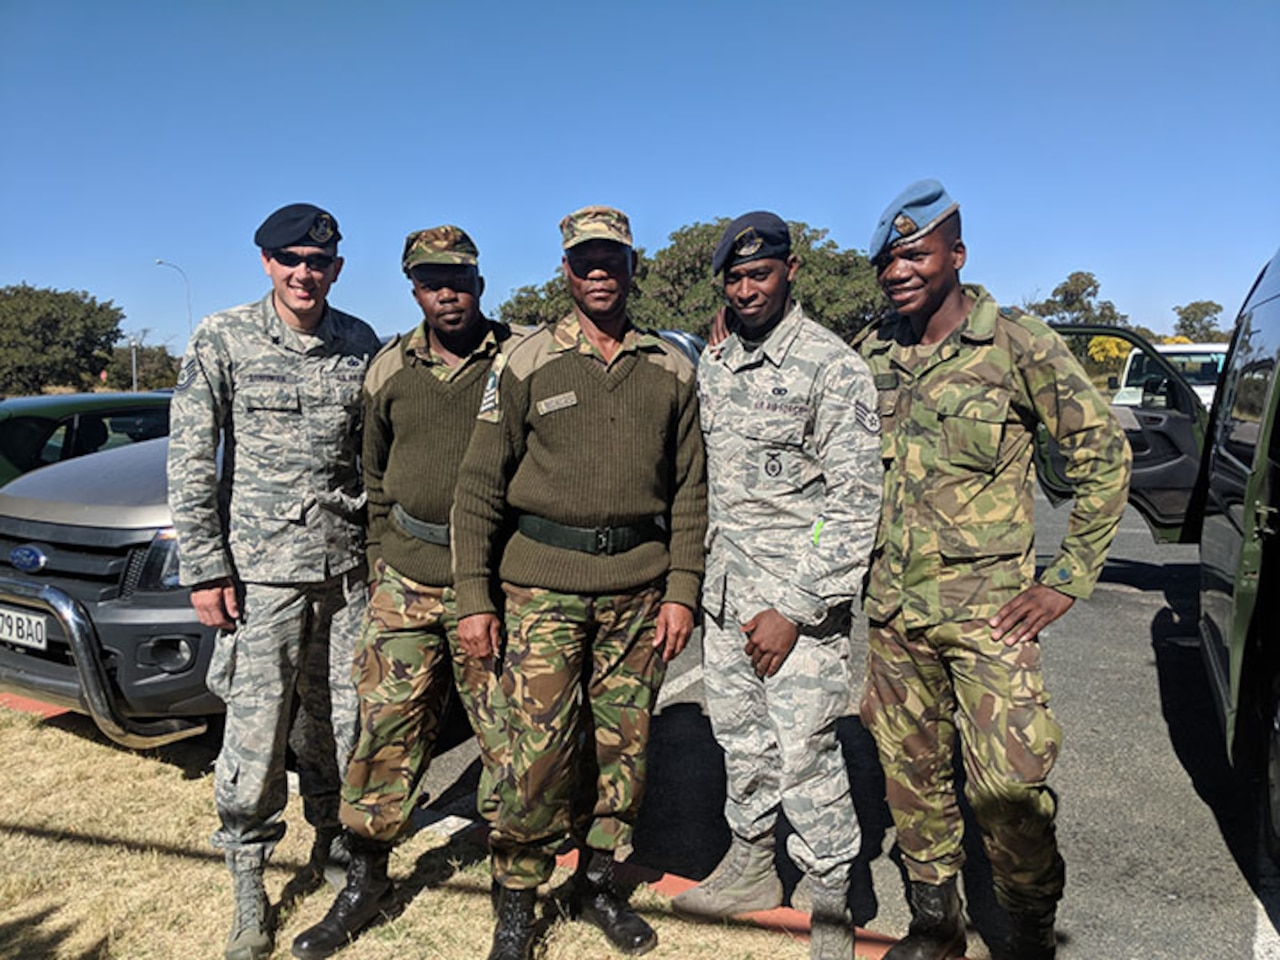 145th Airlift Wing Security Force Tech. Sgt. Adam Barringer, left, and Staff Sgt. Eric Stitt, second from right, pose for a picture with their Botswana Defense Force counterparts. North Carolina Air National Guard's 145th Airlift Wing Security Forces travelled to Botswana, Africa, in late June 2018, to work side-by-side with their Botswana Defense Air Force (BDF).